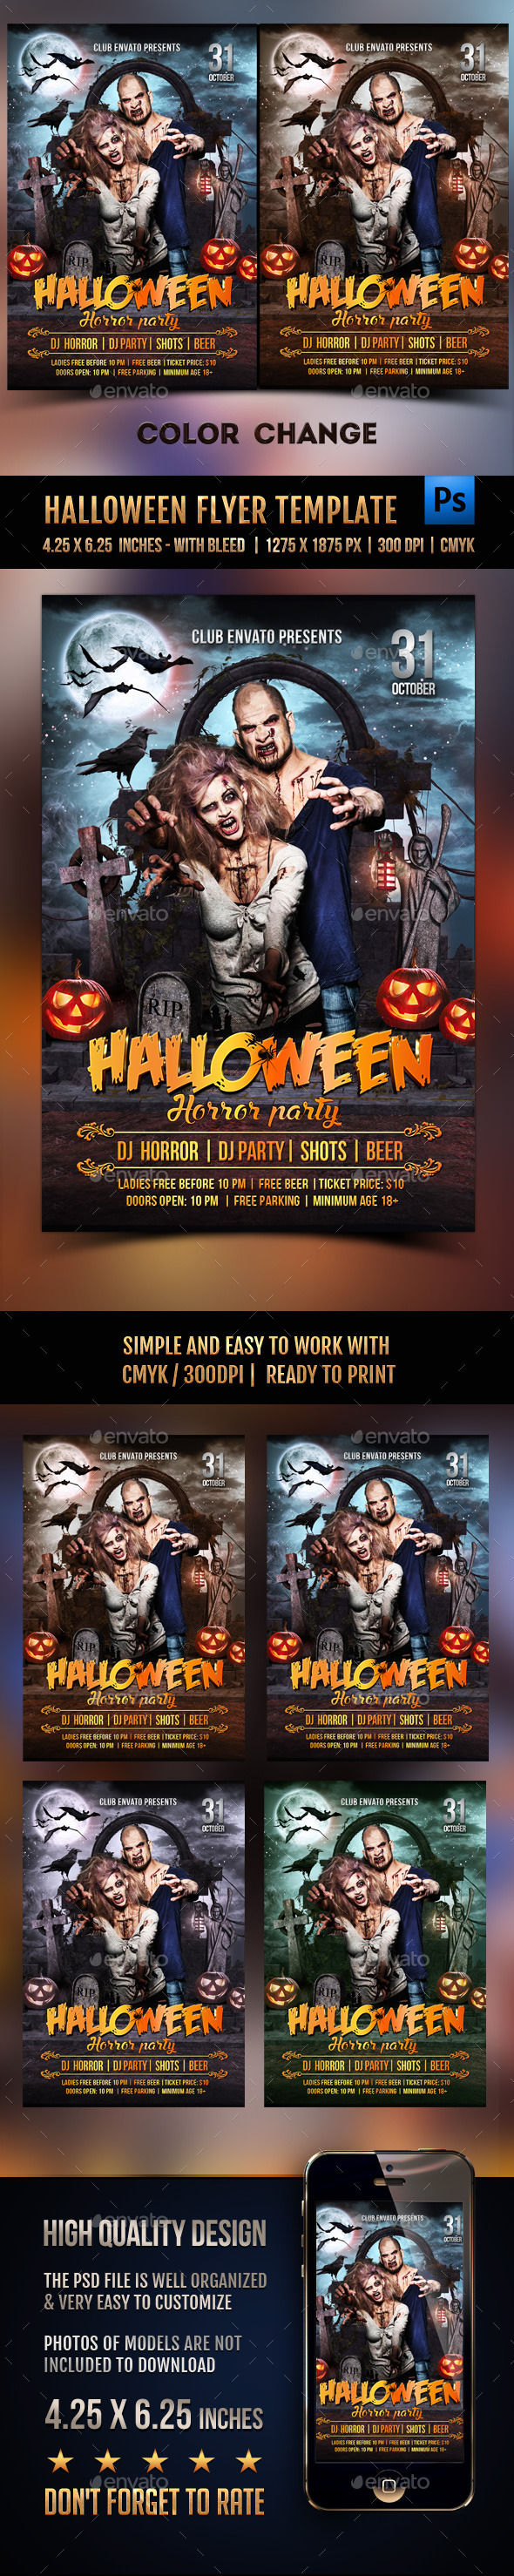 Halloween Flyer Template by Rembassio (Halloween party flyer)